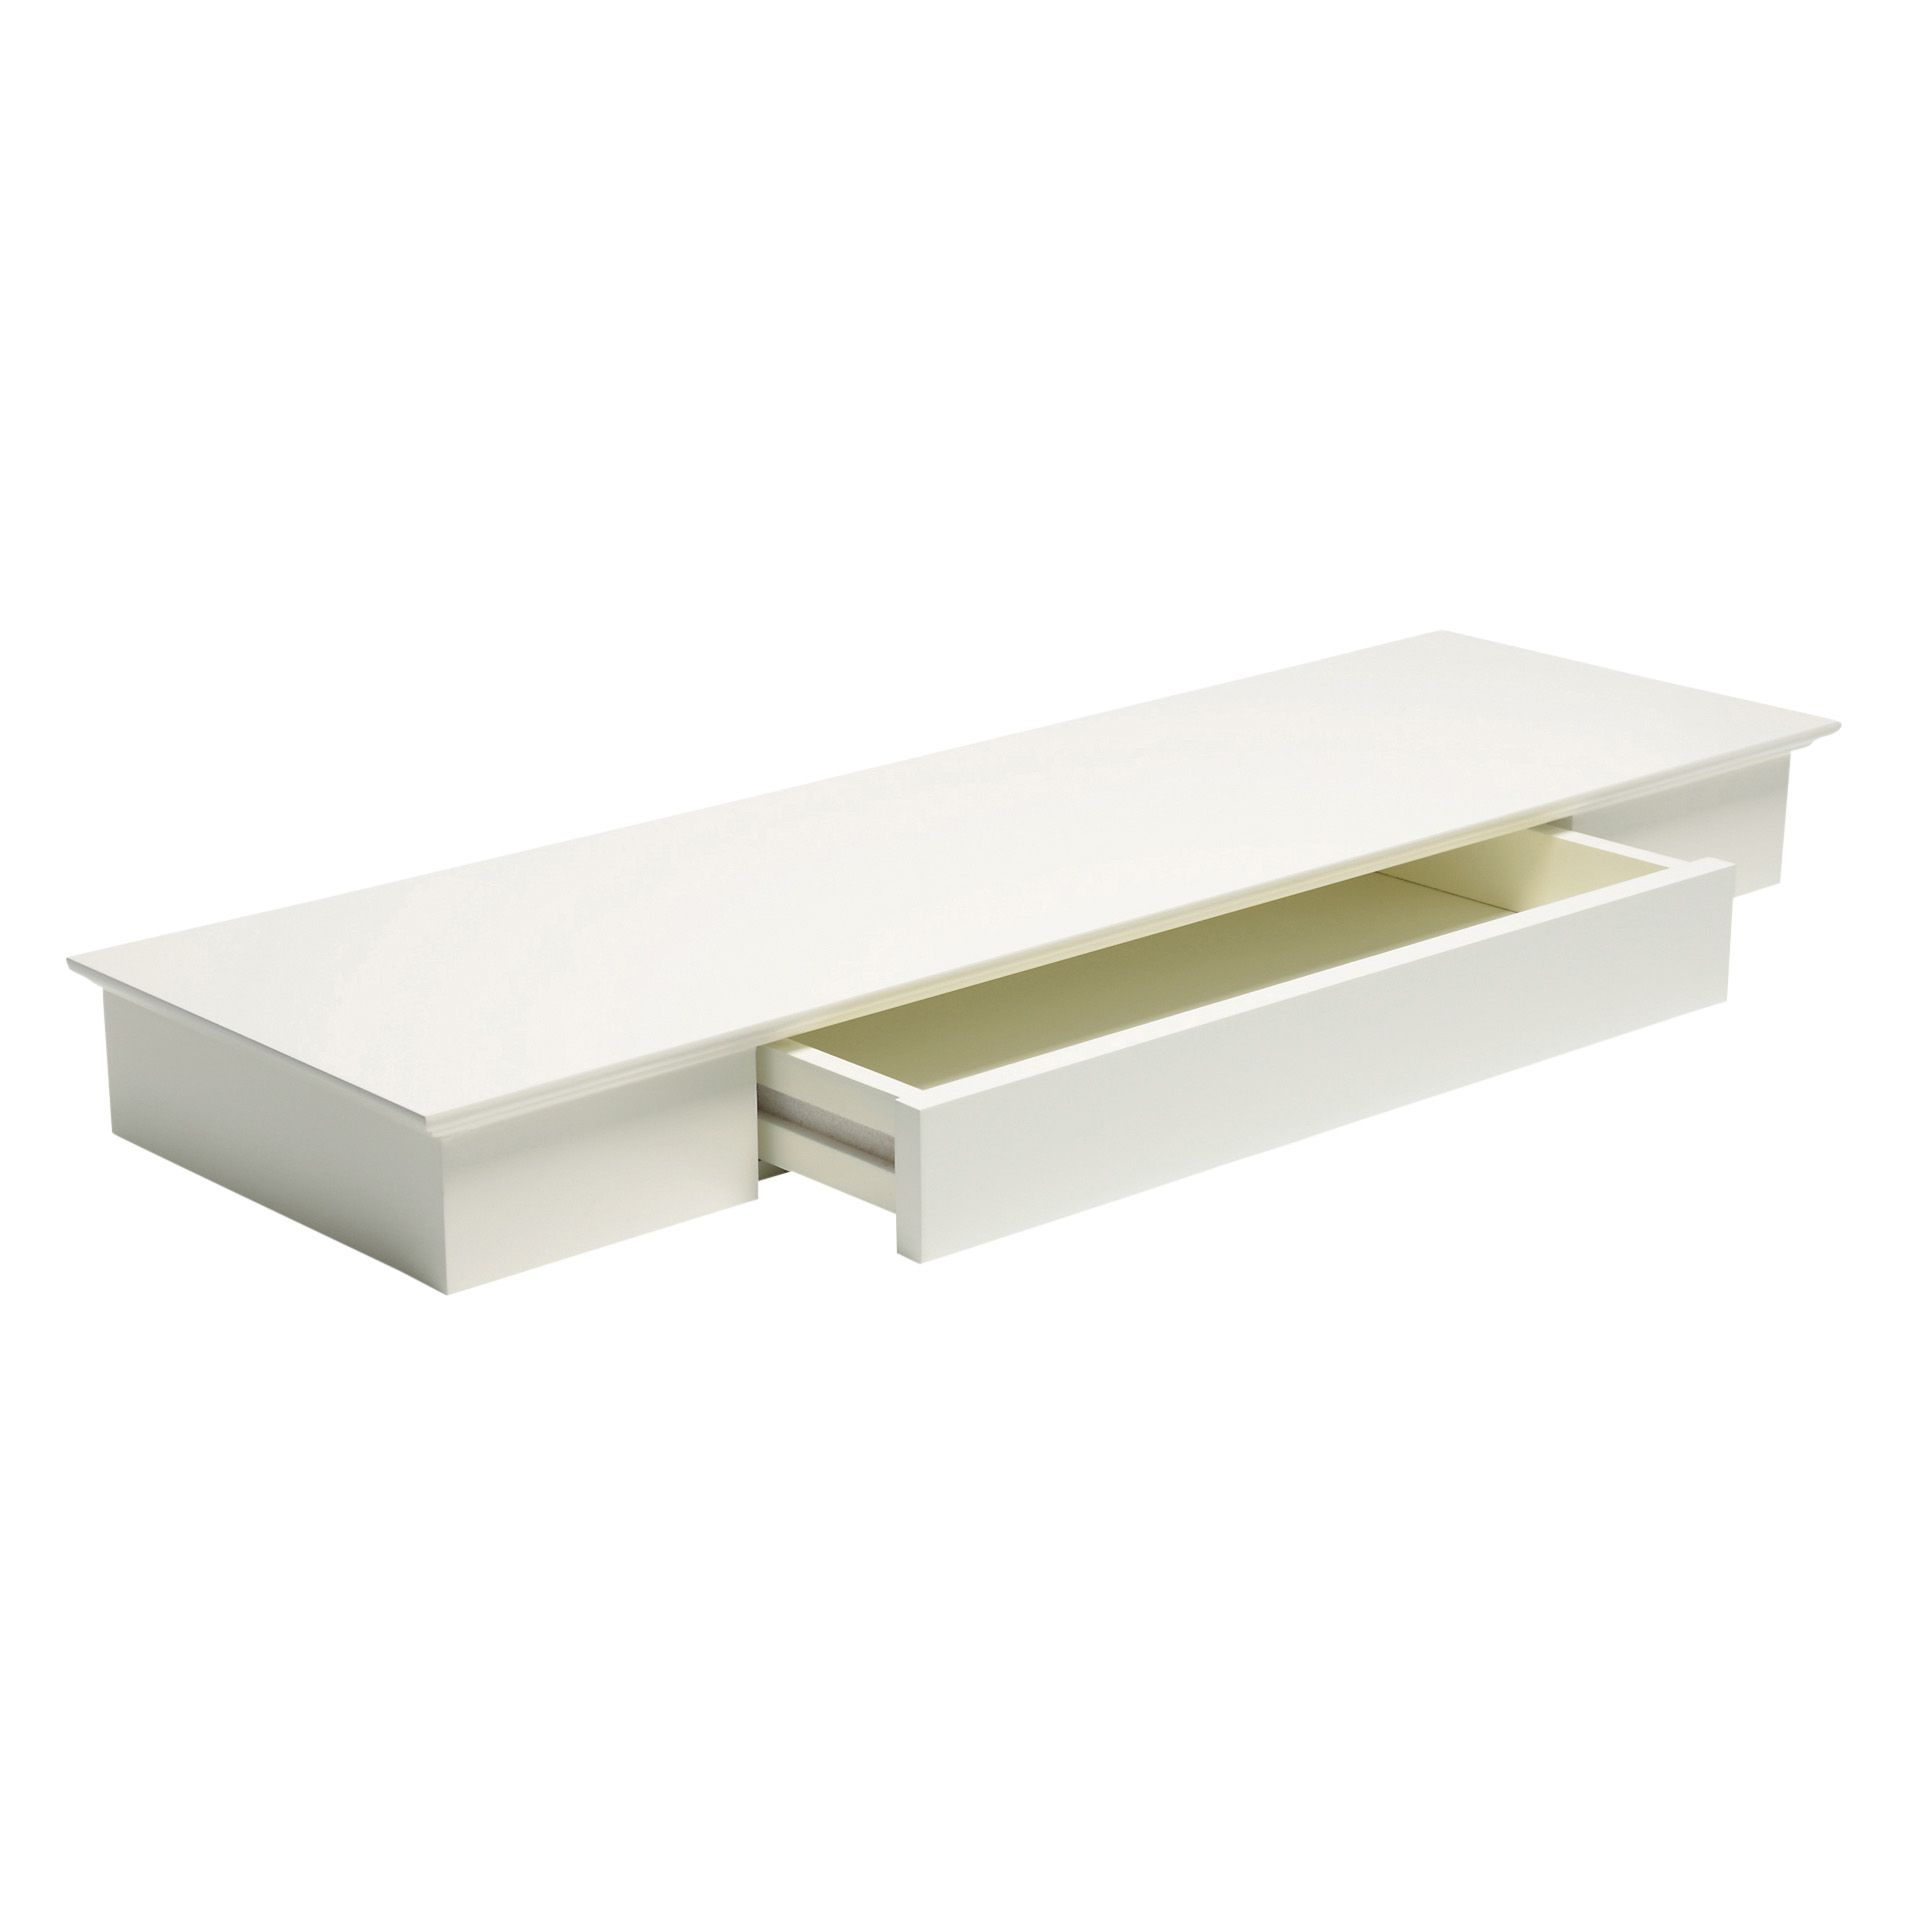 Bathroom Cabinets Uk Bq Heritage Cream Floating Drawer Shelf L804mm D251mm